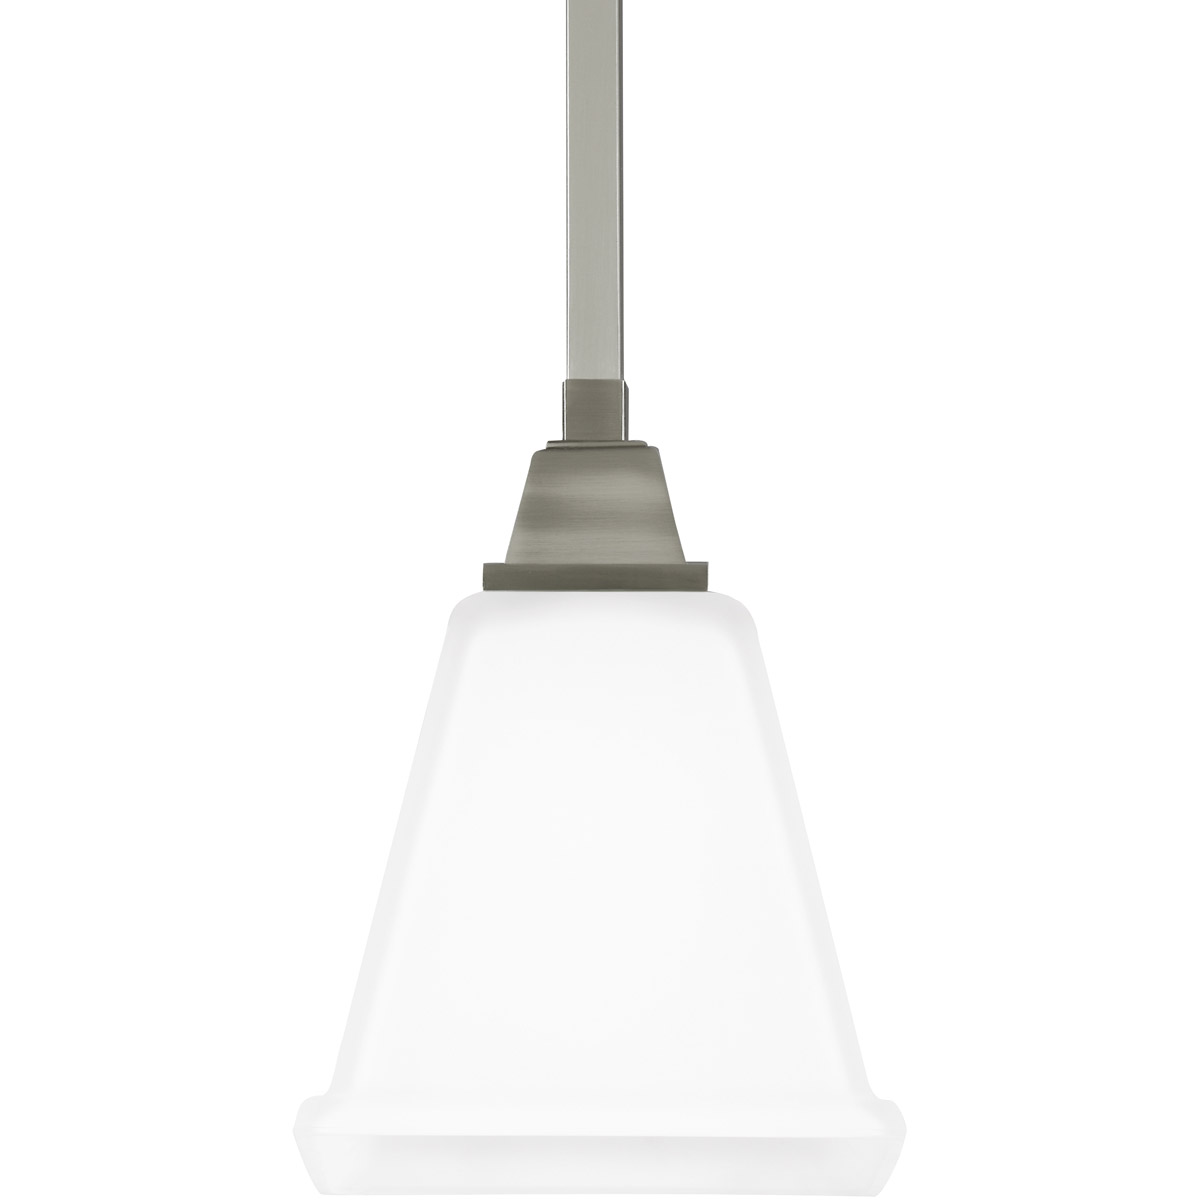 Sea Gull 6150401-962 Denhelm 1 Light 6 inch Brushed Nickel Mini Pendant Ceiling Light in Standard photo